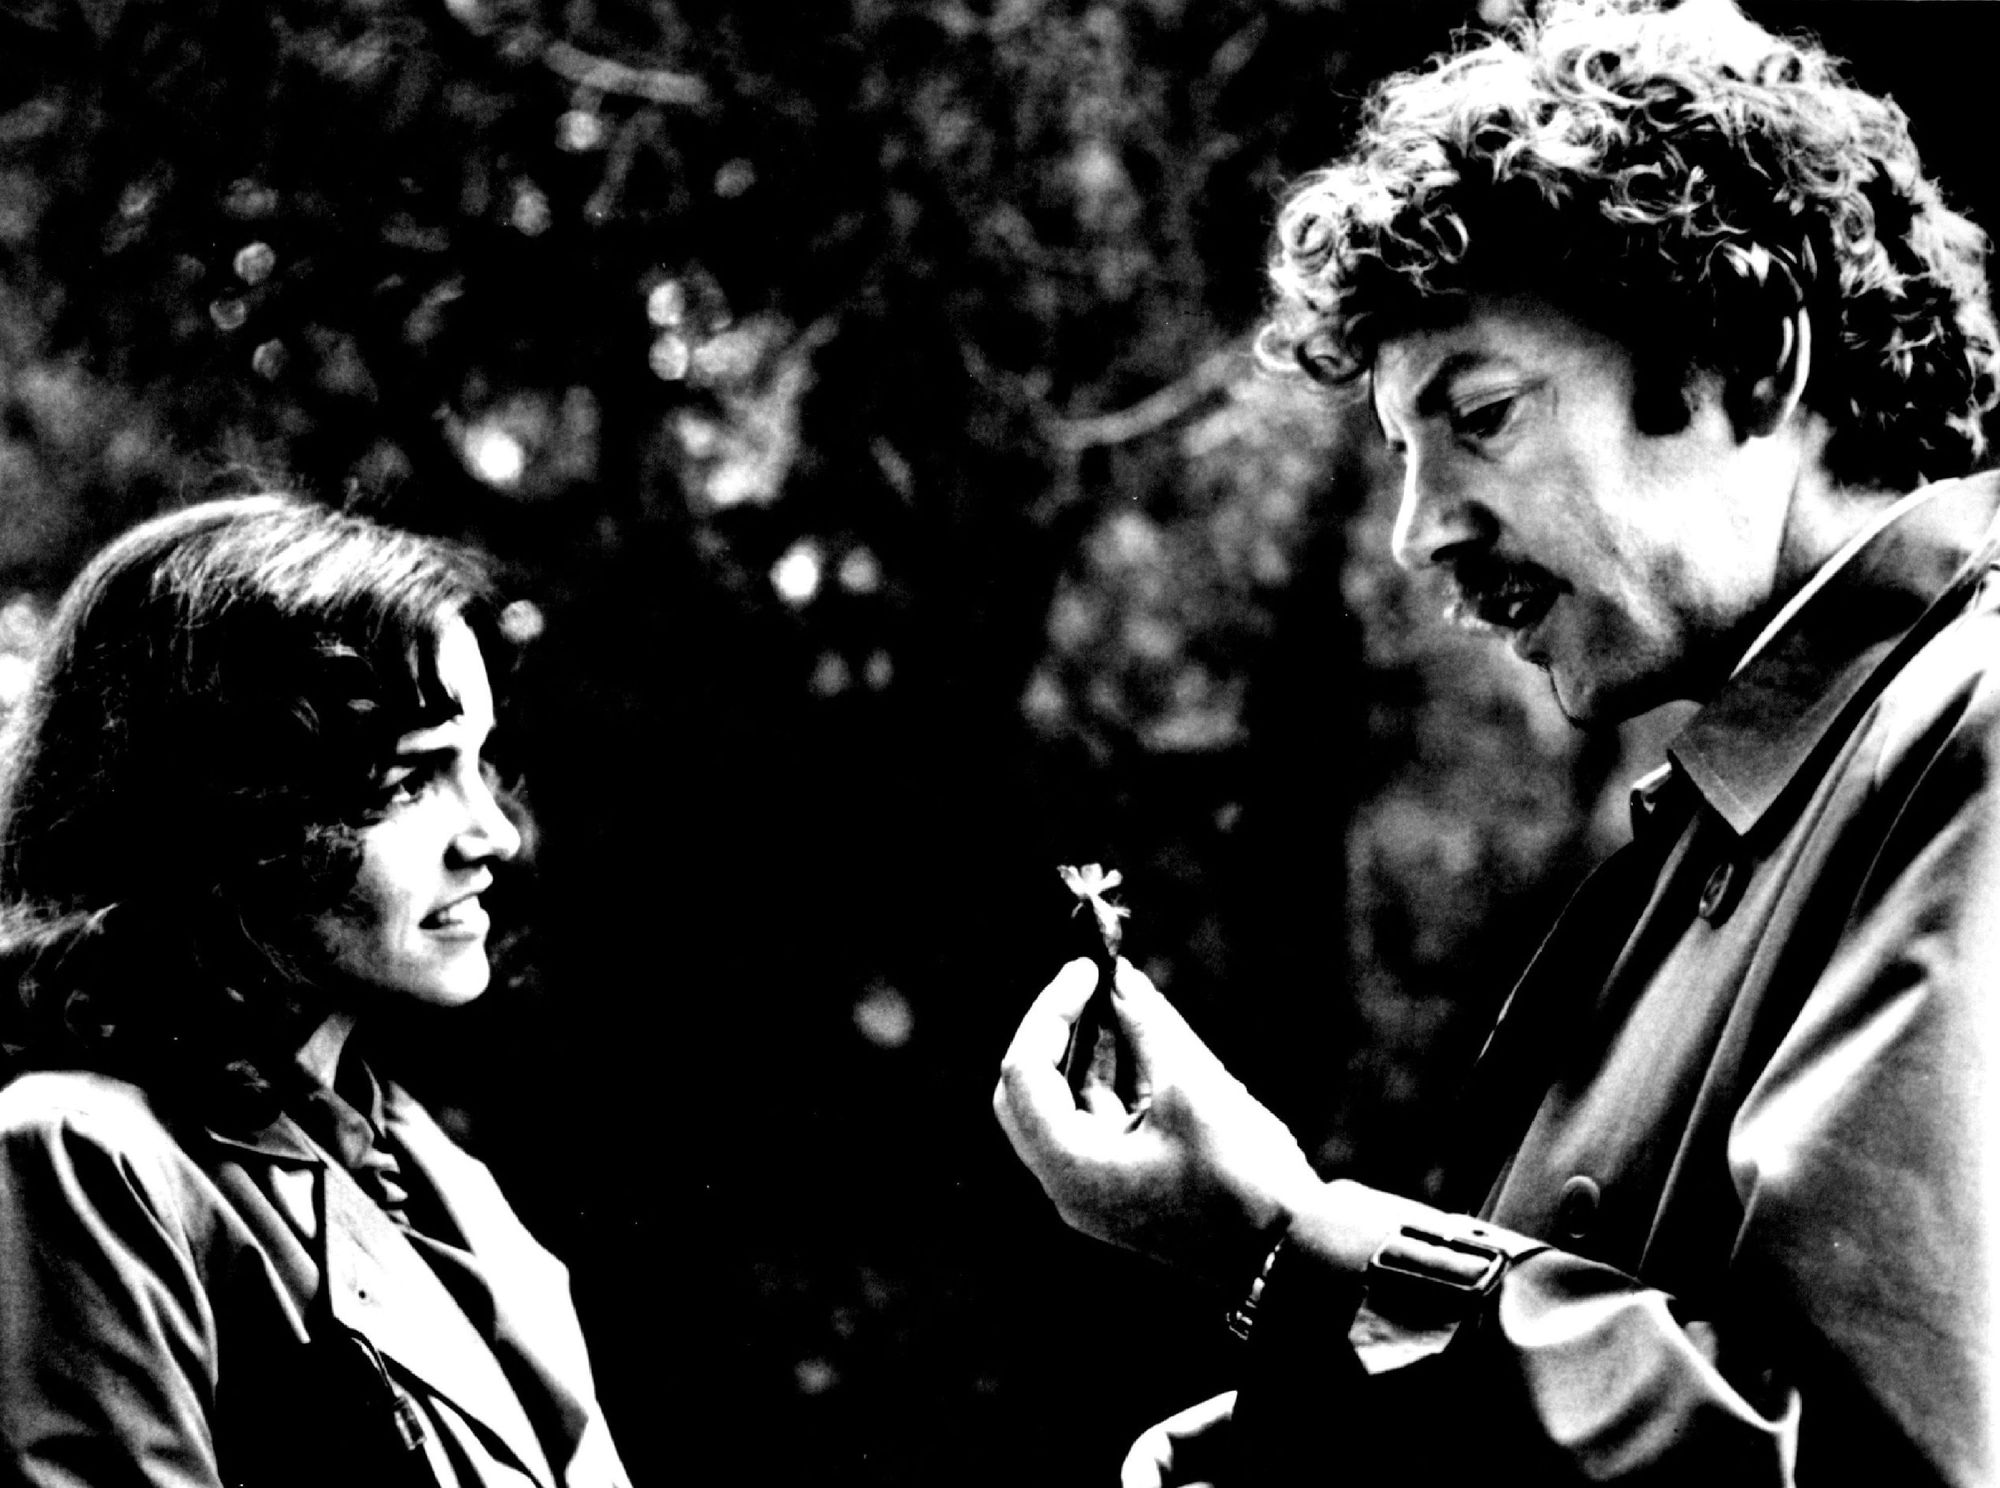 Brooke Adams and Donald Sutherland in 'Invasion of the Body Snatchers.'